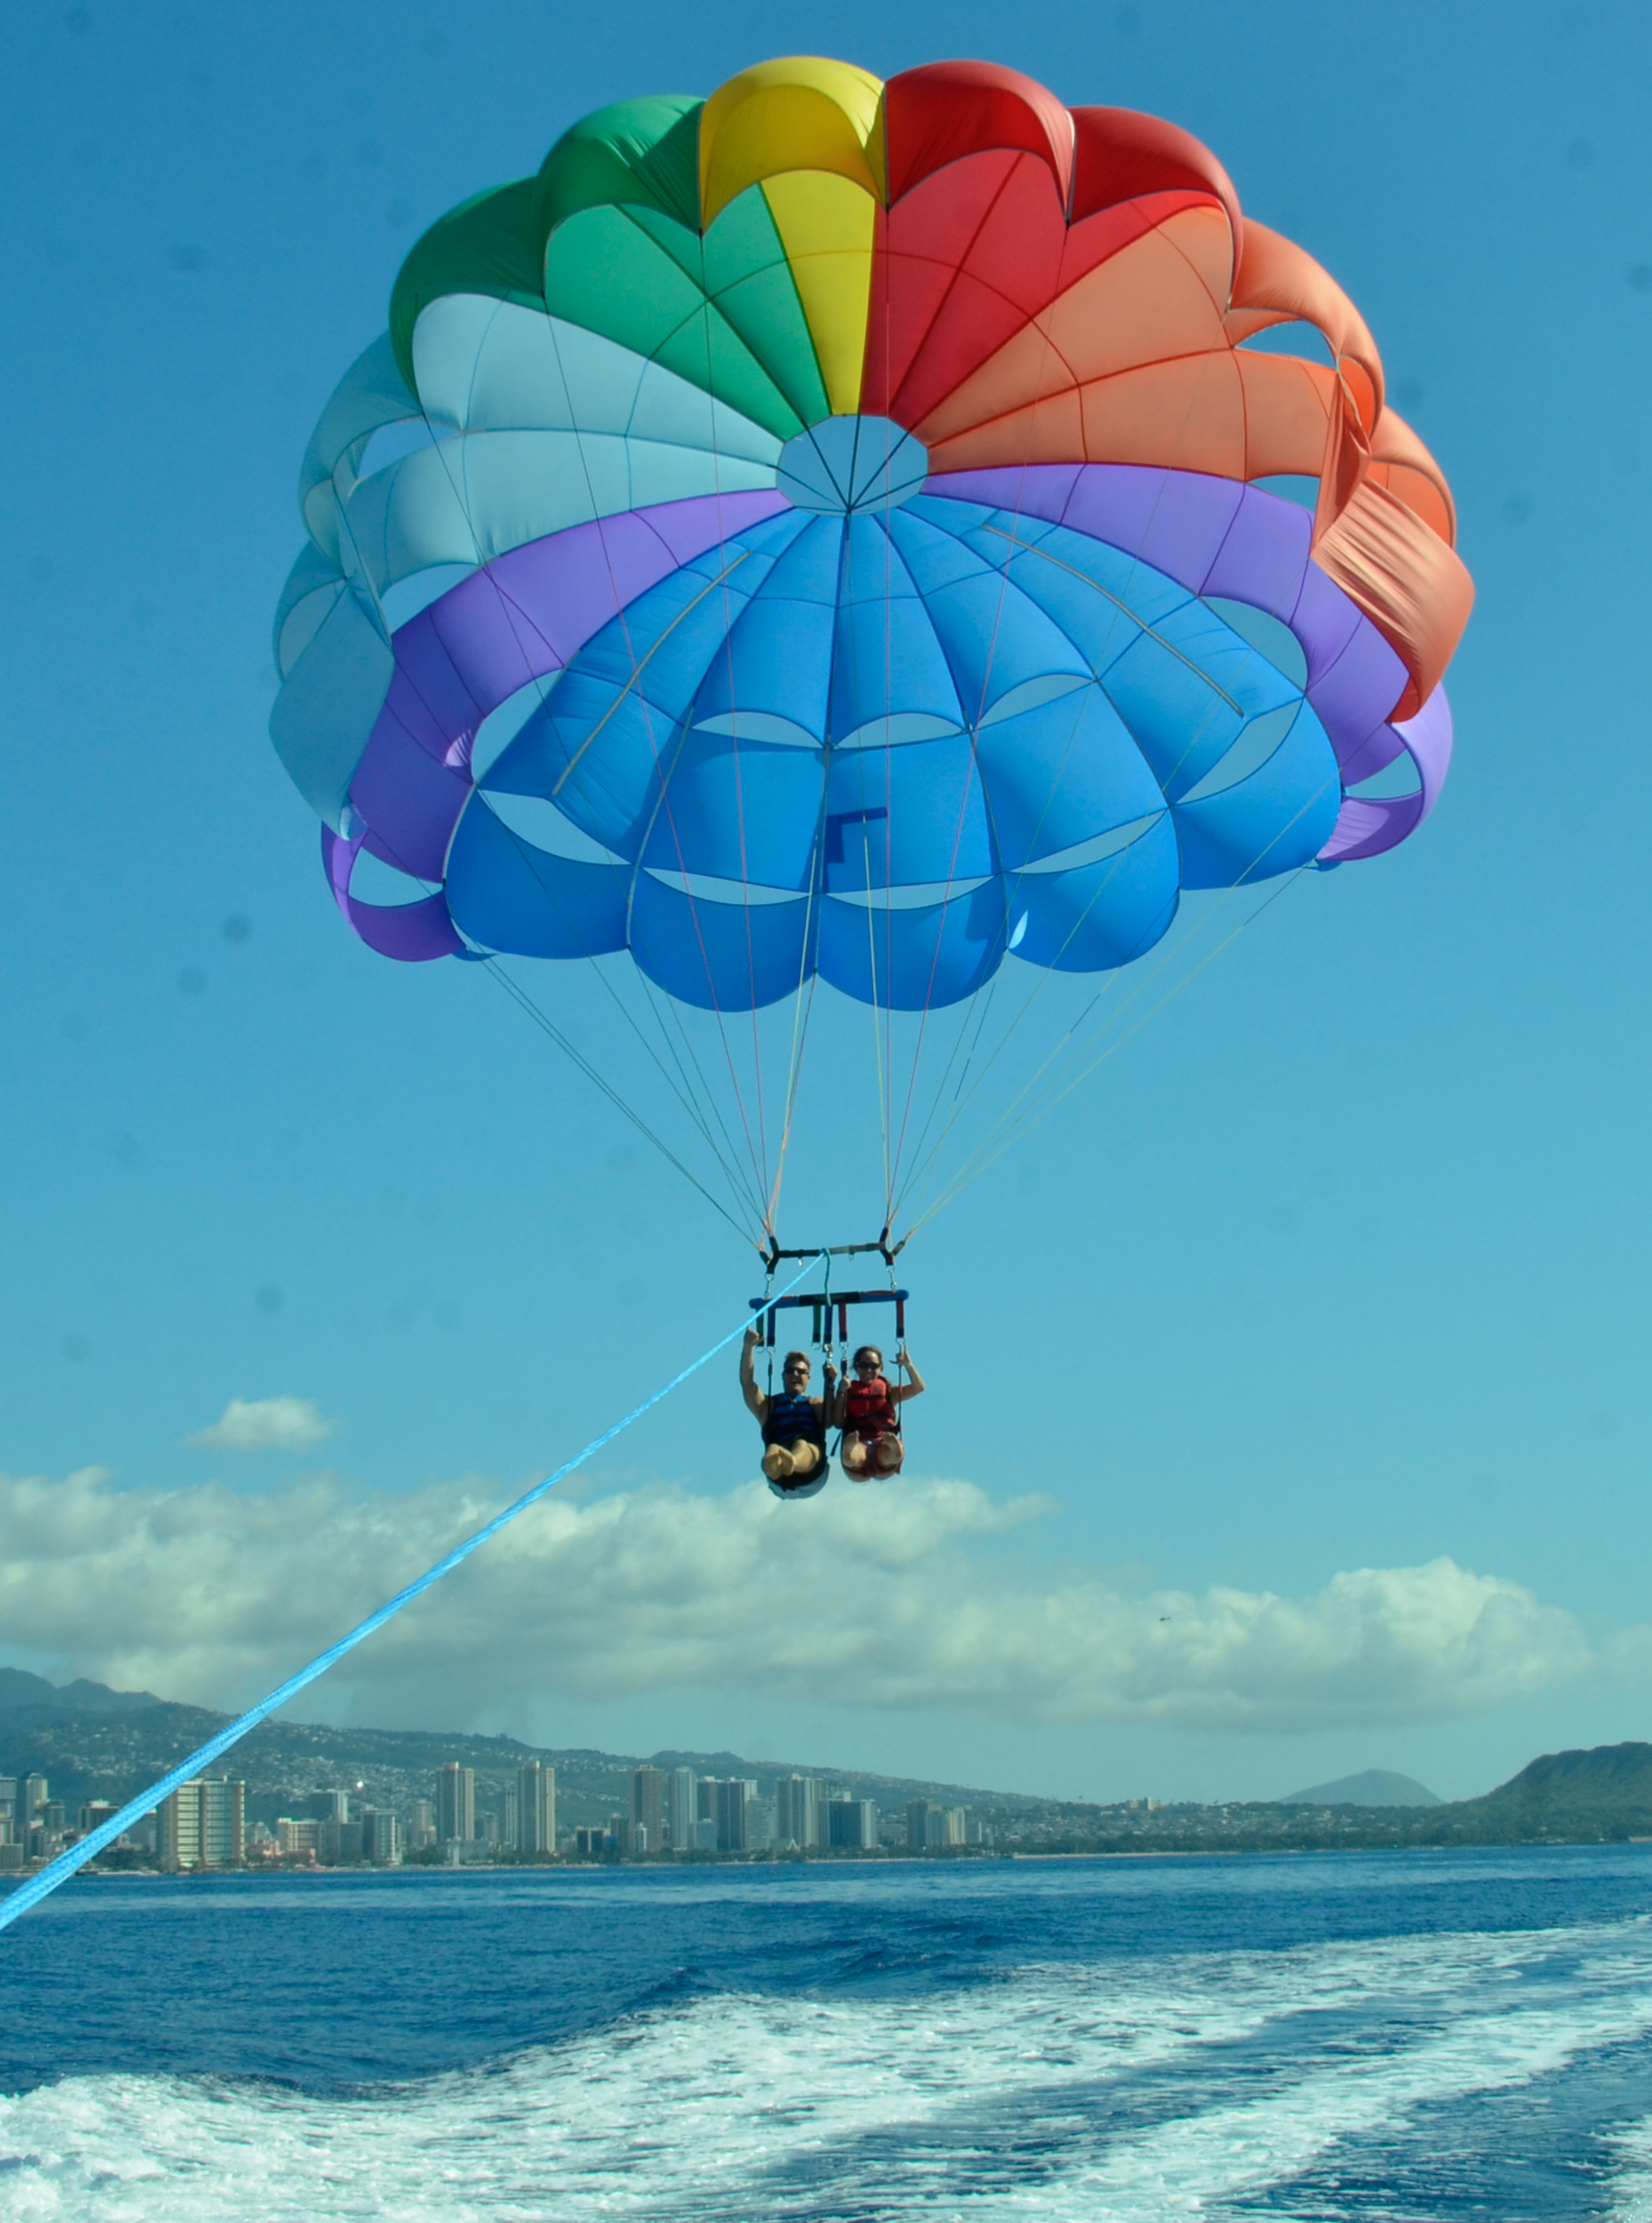 Parasailing In Honolulu- Parasailing in Hawaii - Honolulu Parasailing - Hawaii Parasailing - Parasailing Honolulu Hawaii - What To Do On Oahu - Communikait by Kait Hanson #honolulu #parasailing #oahu #whattodoonoahu #hawaiiitinerary